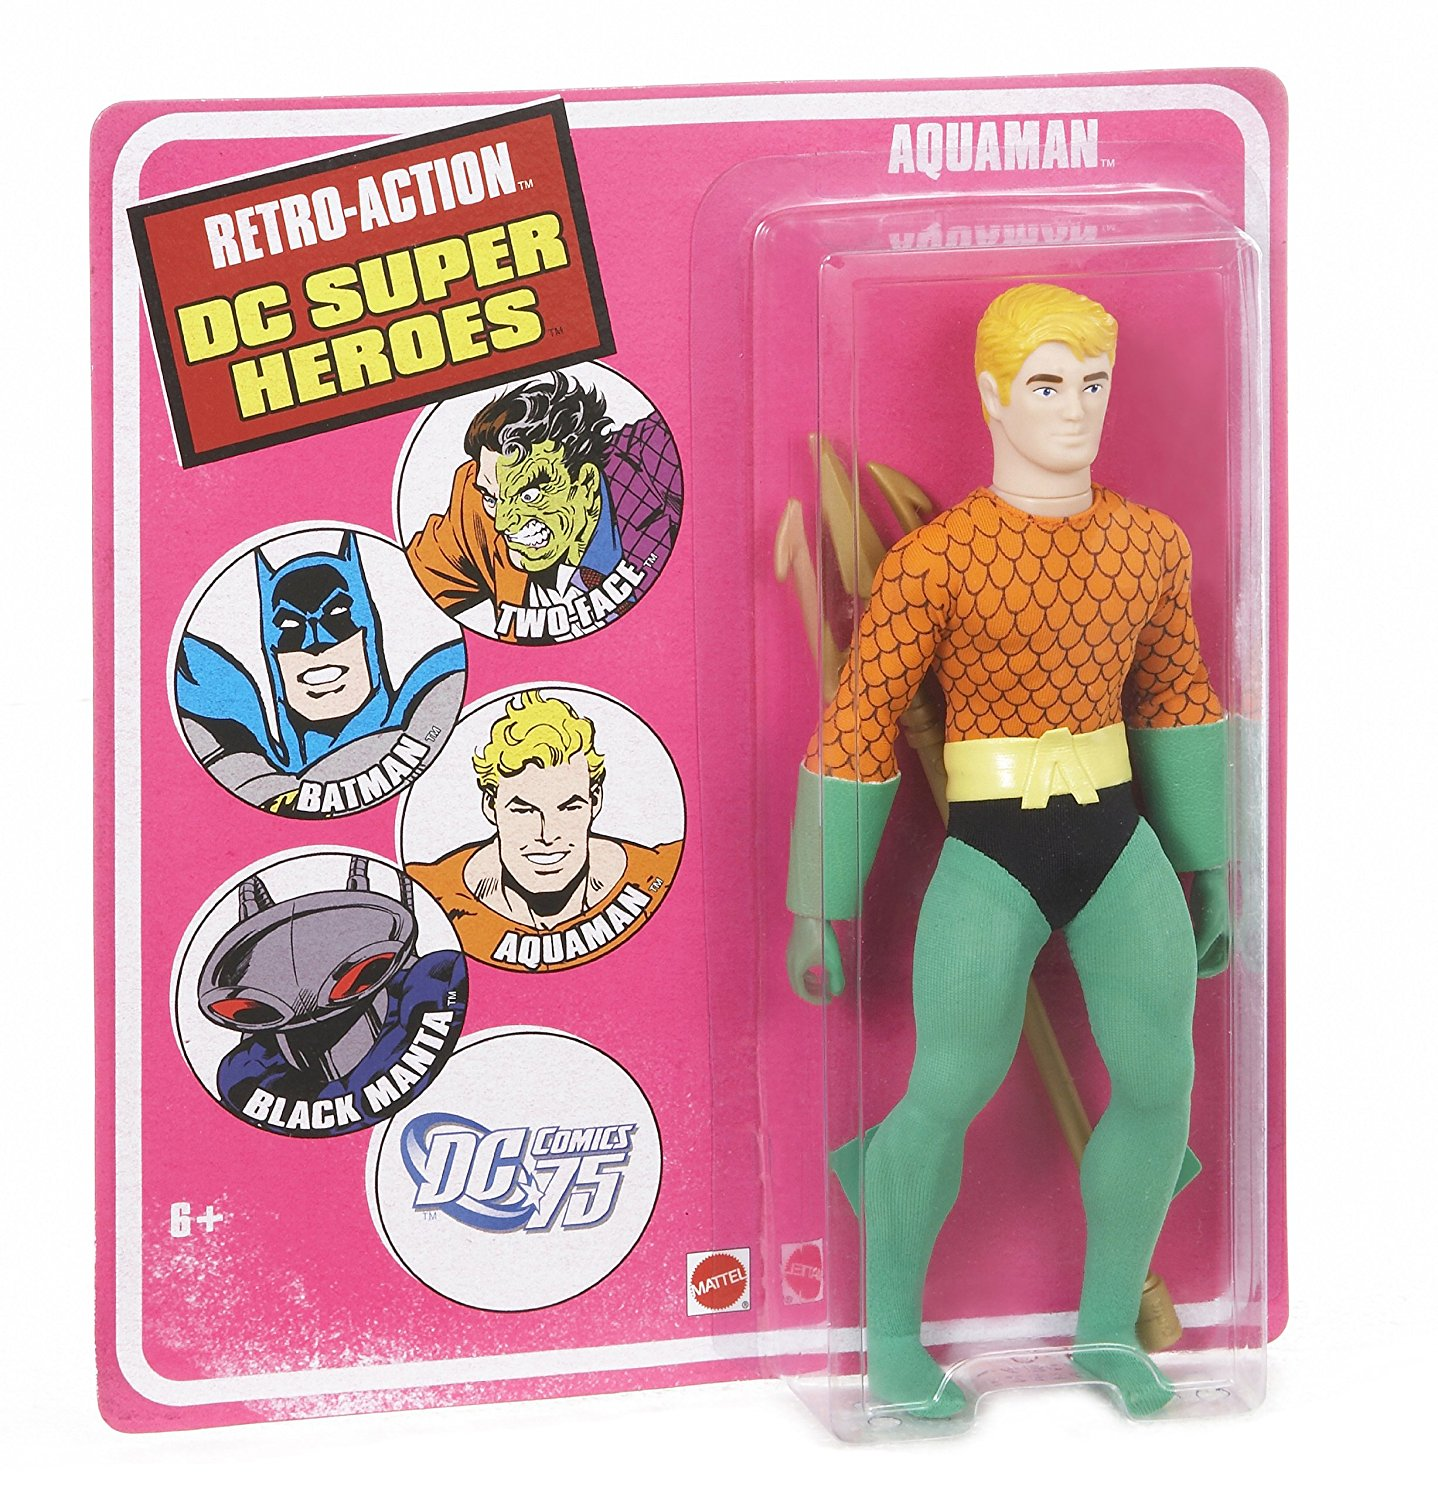 Retro-Action DC Super Heroes Aquaman Figure, Celebrate DC Comics 75th Anniversary By... by